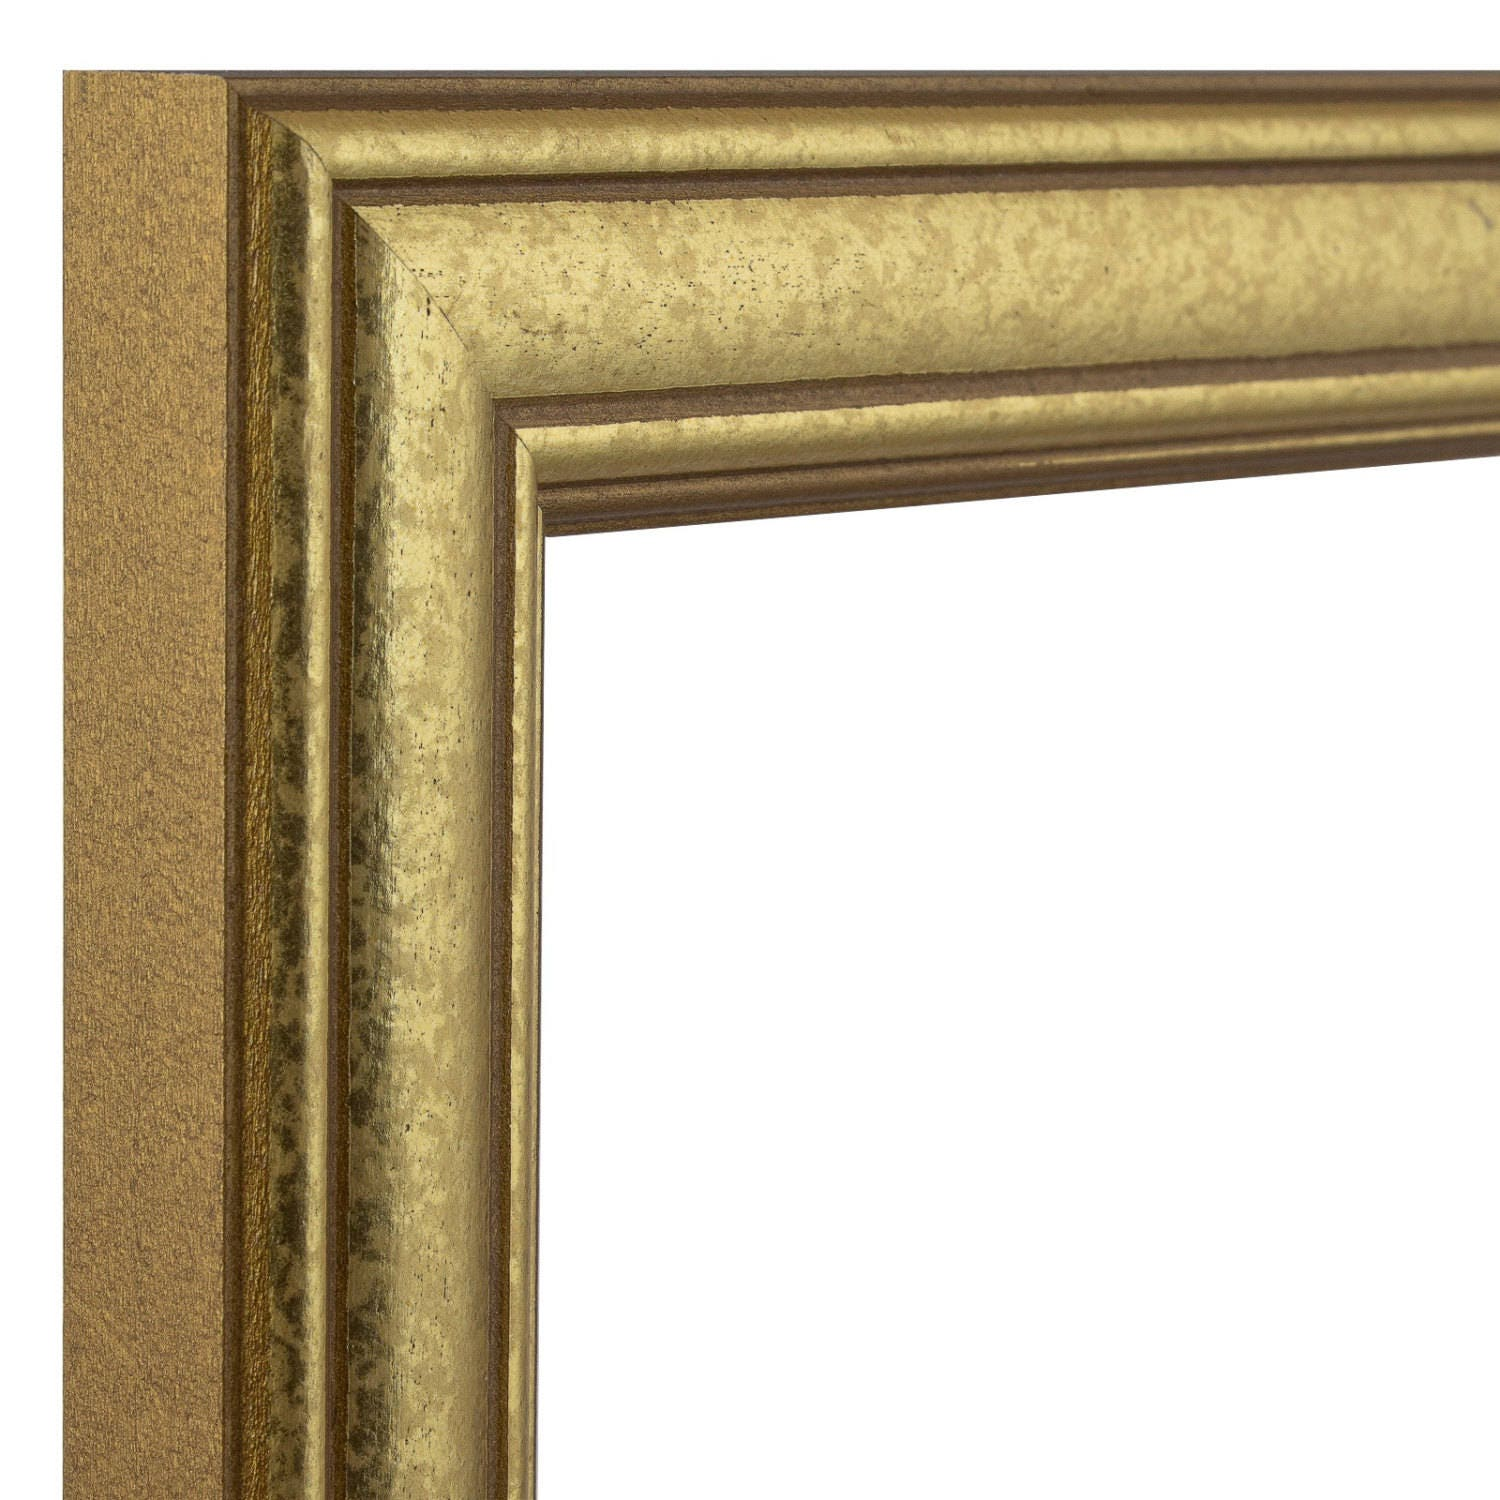 Craig frames 19x25 inch vintage gold picture frame goldstone 3499 jeuxipadfo Image collections